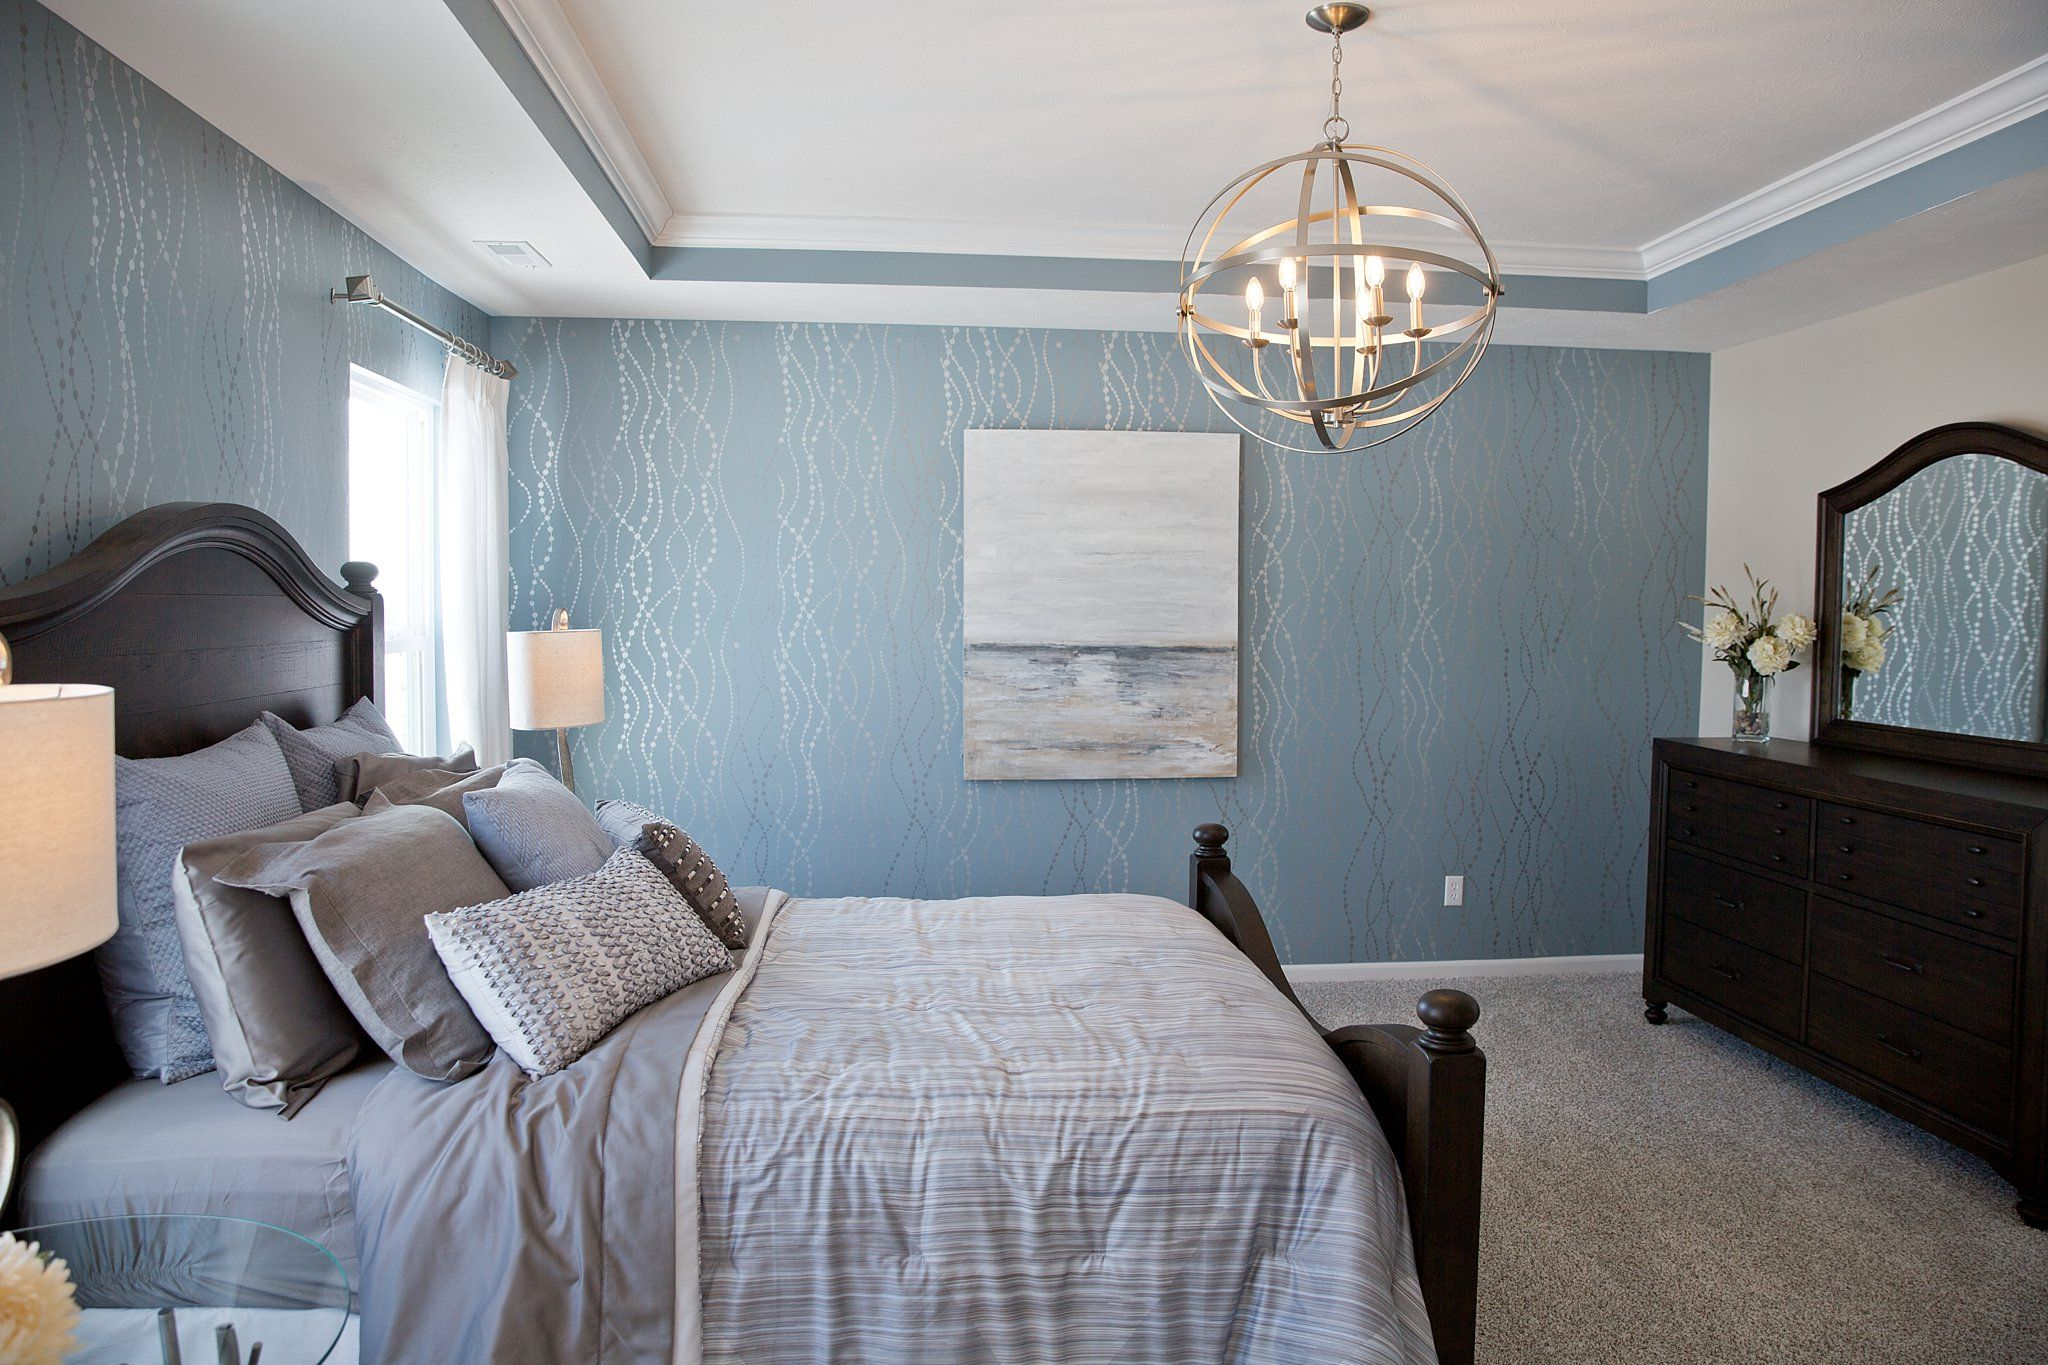 Bedroom featured in the Baymont By Olthof Homes in Gary, IN